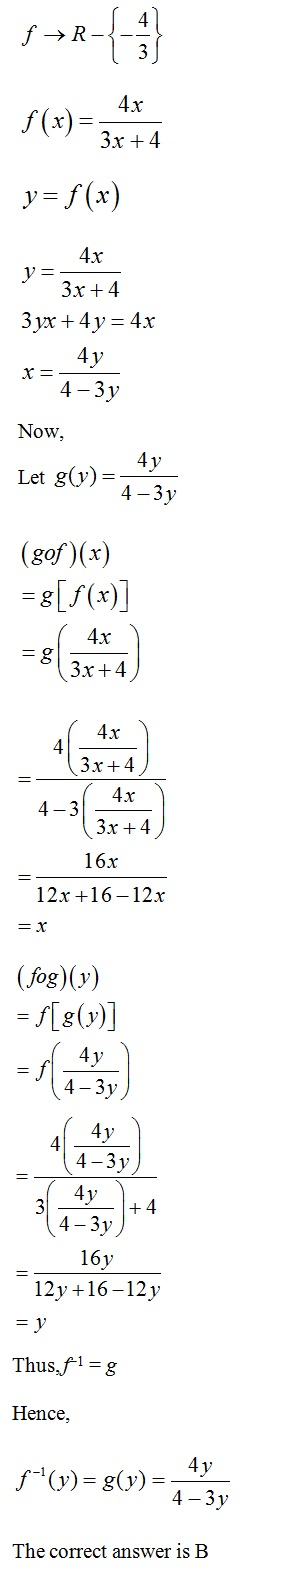 NCERT Solutions for CBSE Class 12th Maths, Chapter 1: Relations and Functions, Exercise 1.3, Solution 14